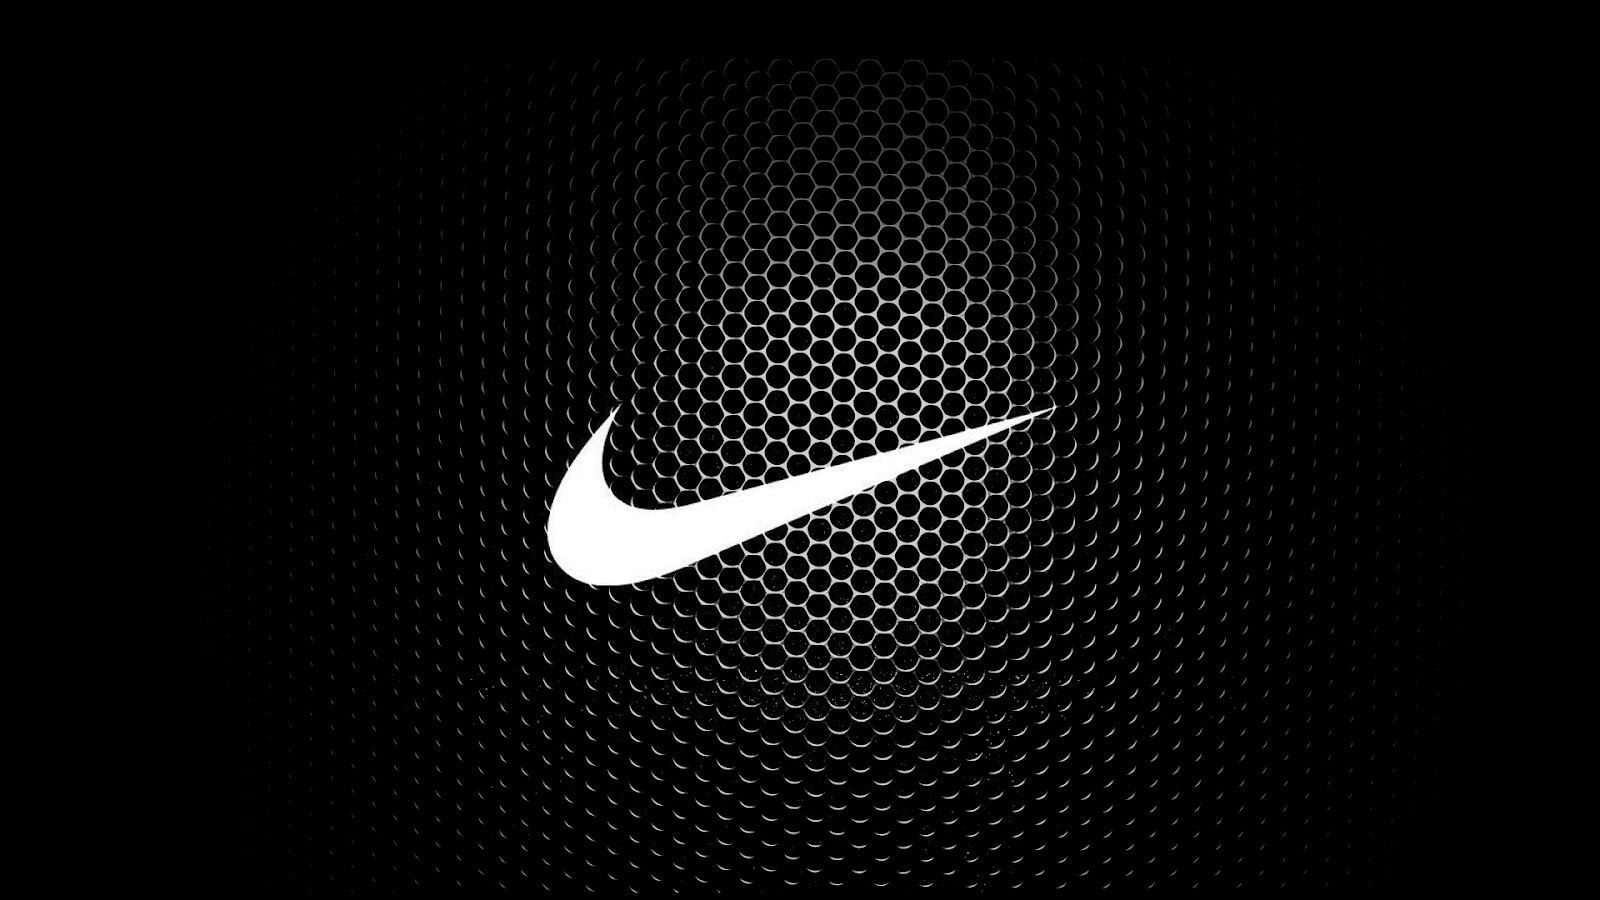 Nike Wallpaper Cool Img In High Definition 12W